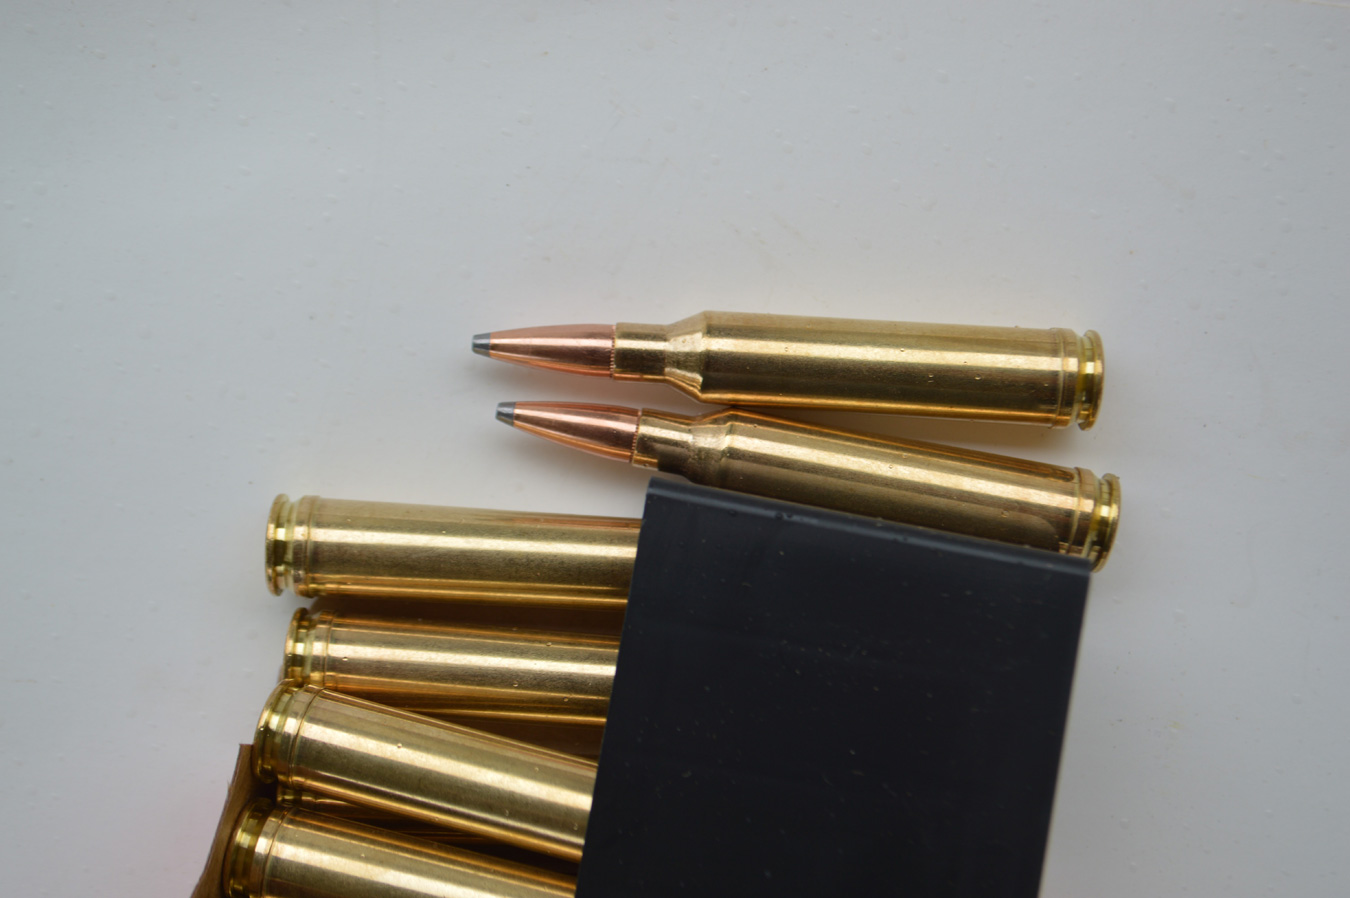 The 7mm Remington Magnum Cartridge - The K-Var Armory